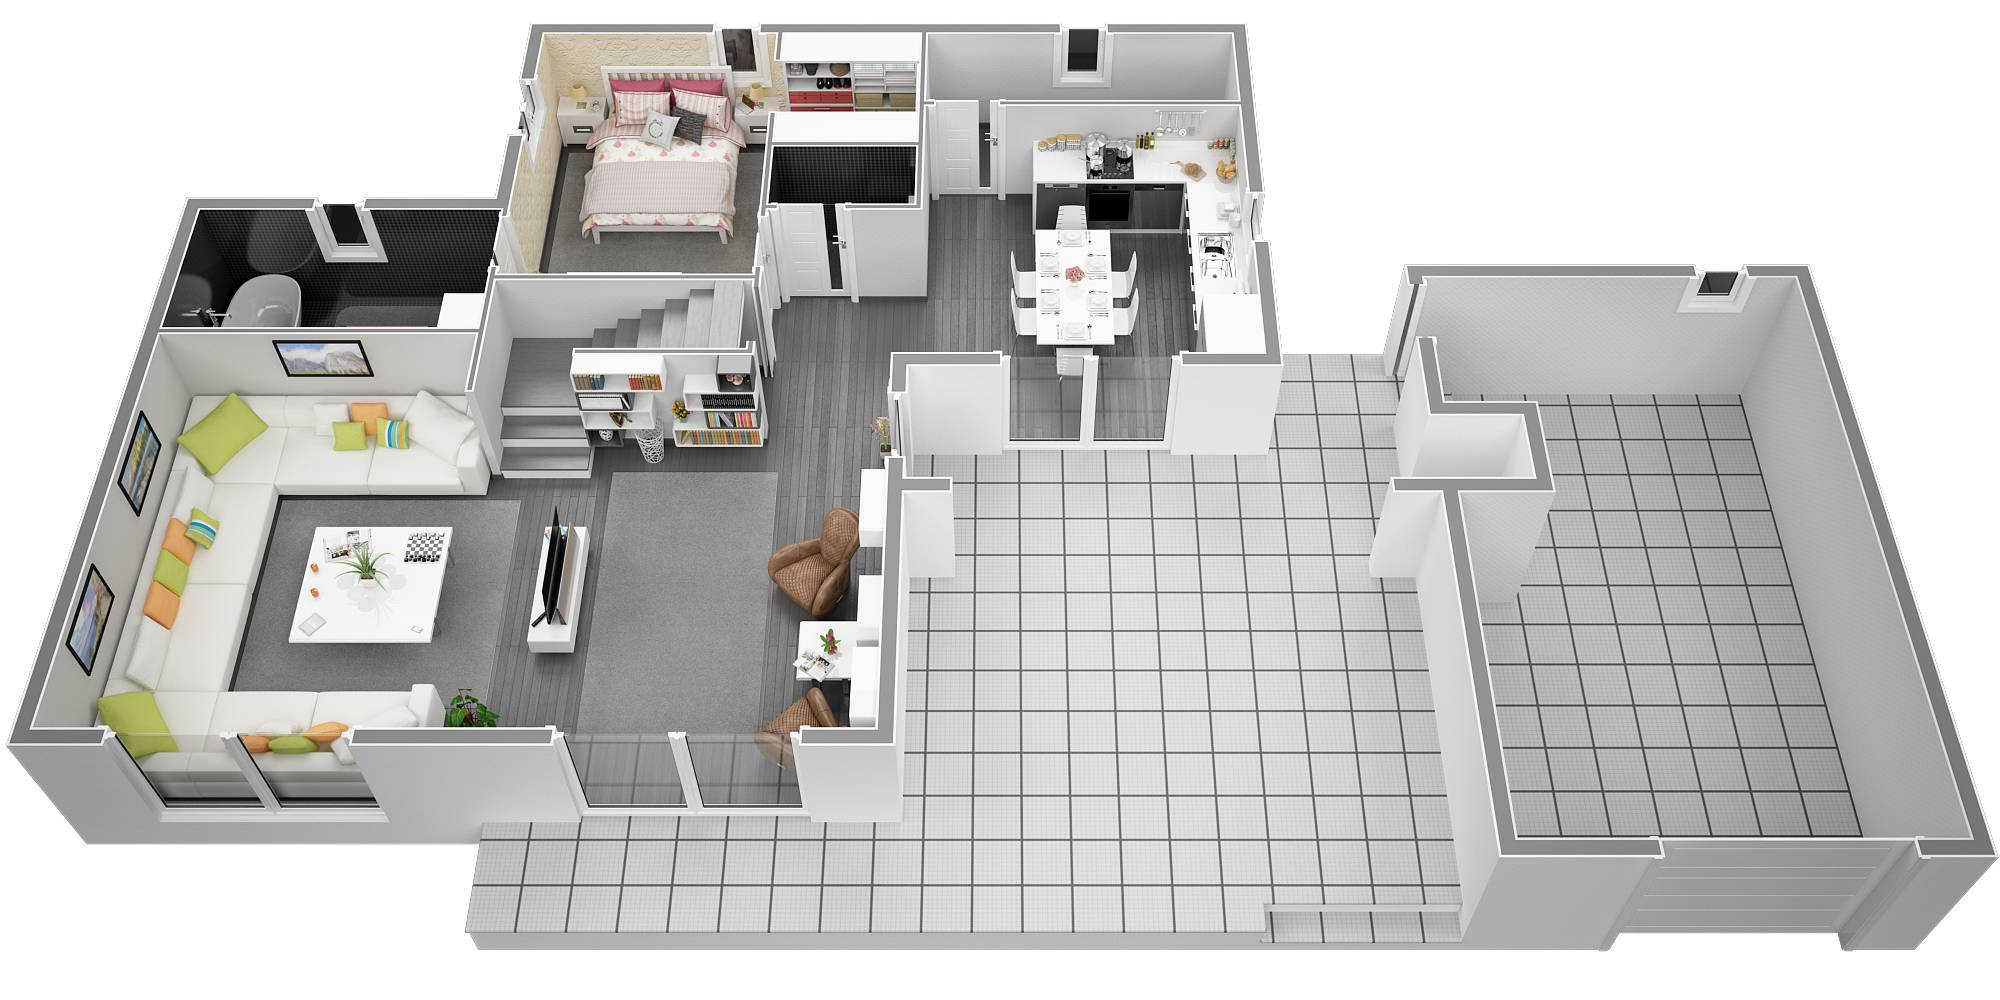 Villa contemporaine 125m2 etage mod le magnolia salon for Villa moderne interieur plan